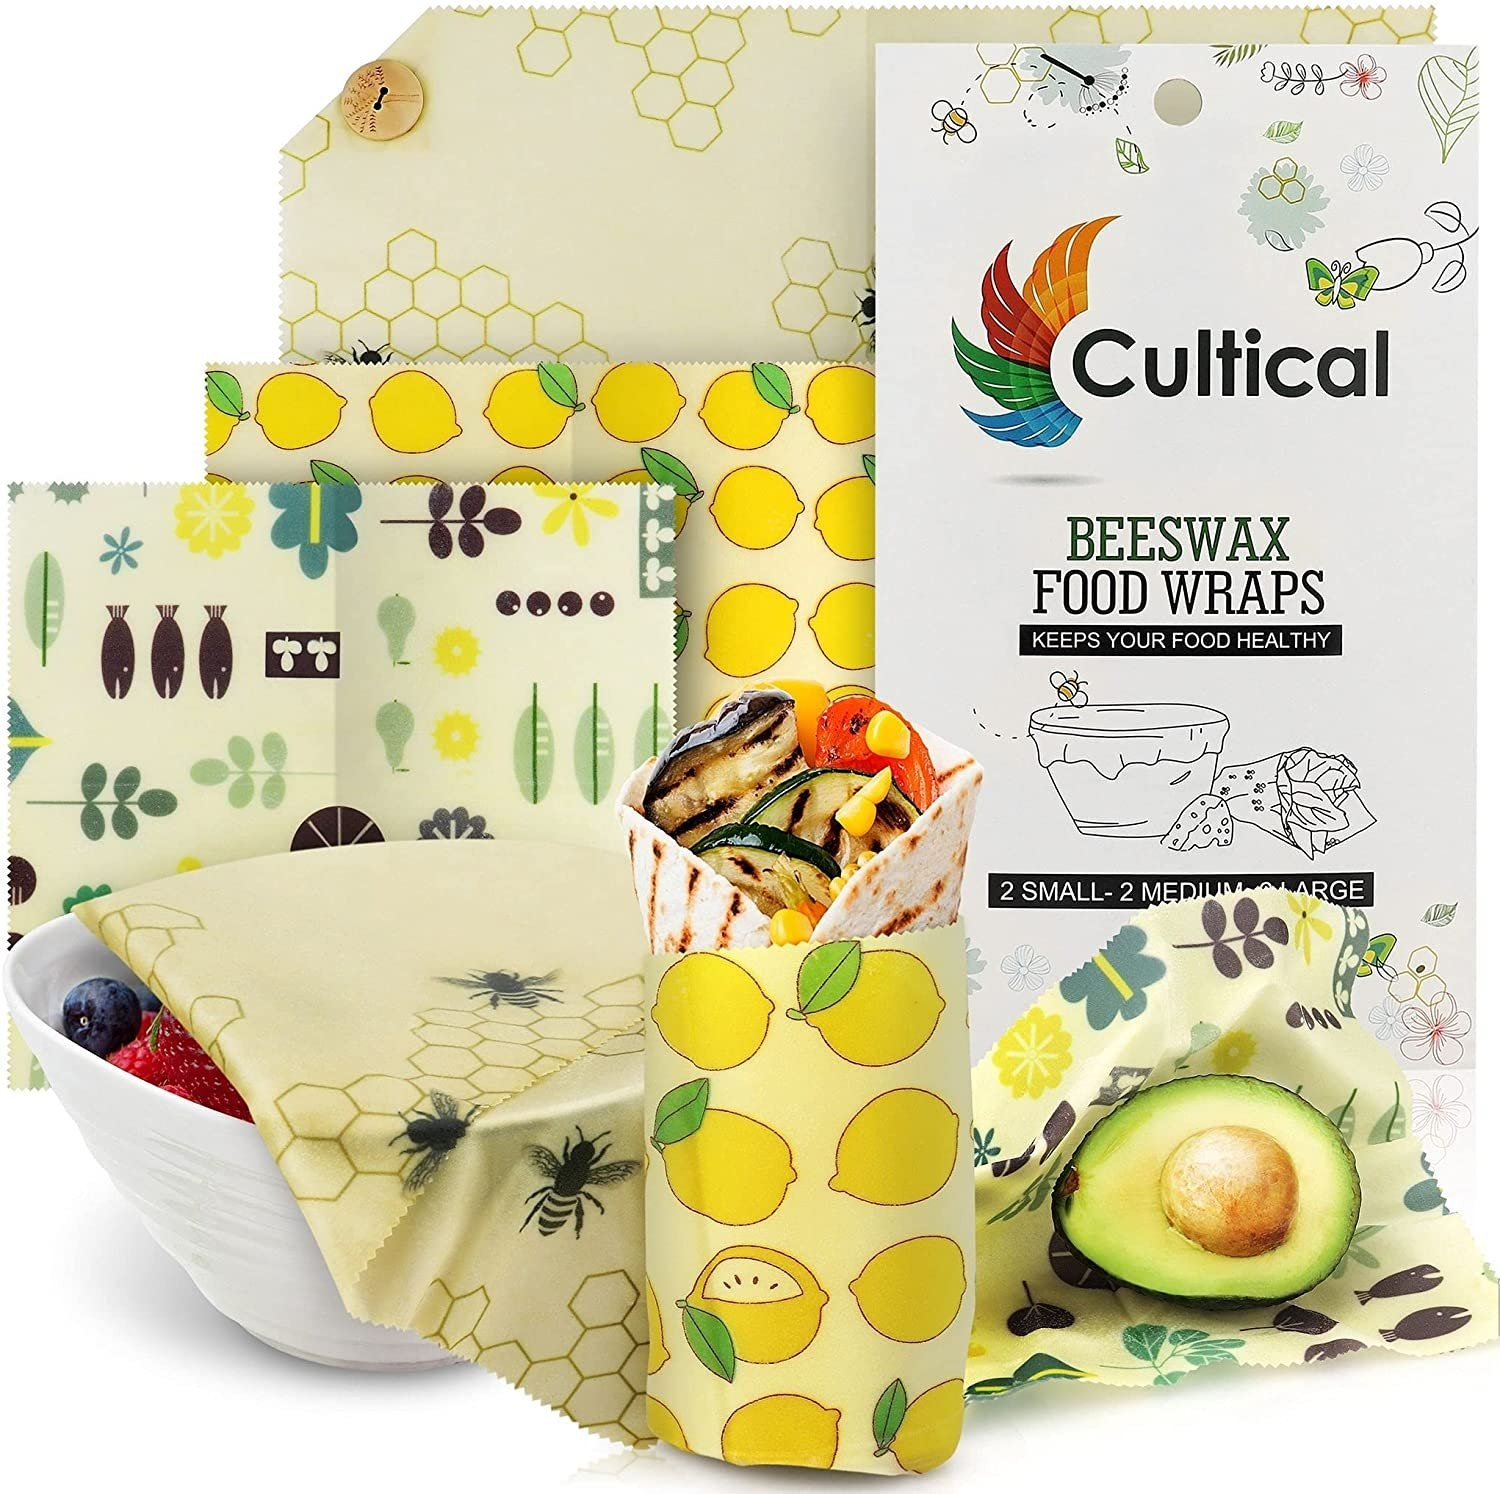 Cultical Beeswax Food Wraps